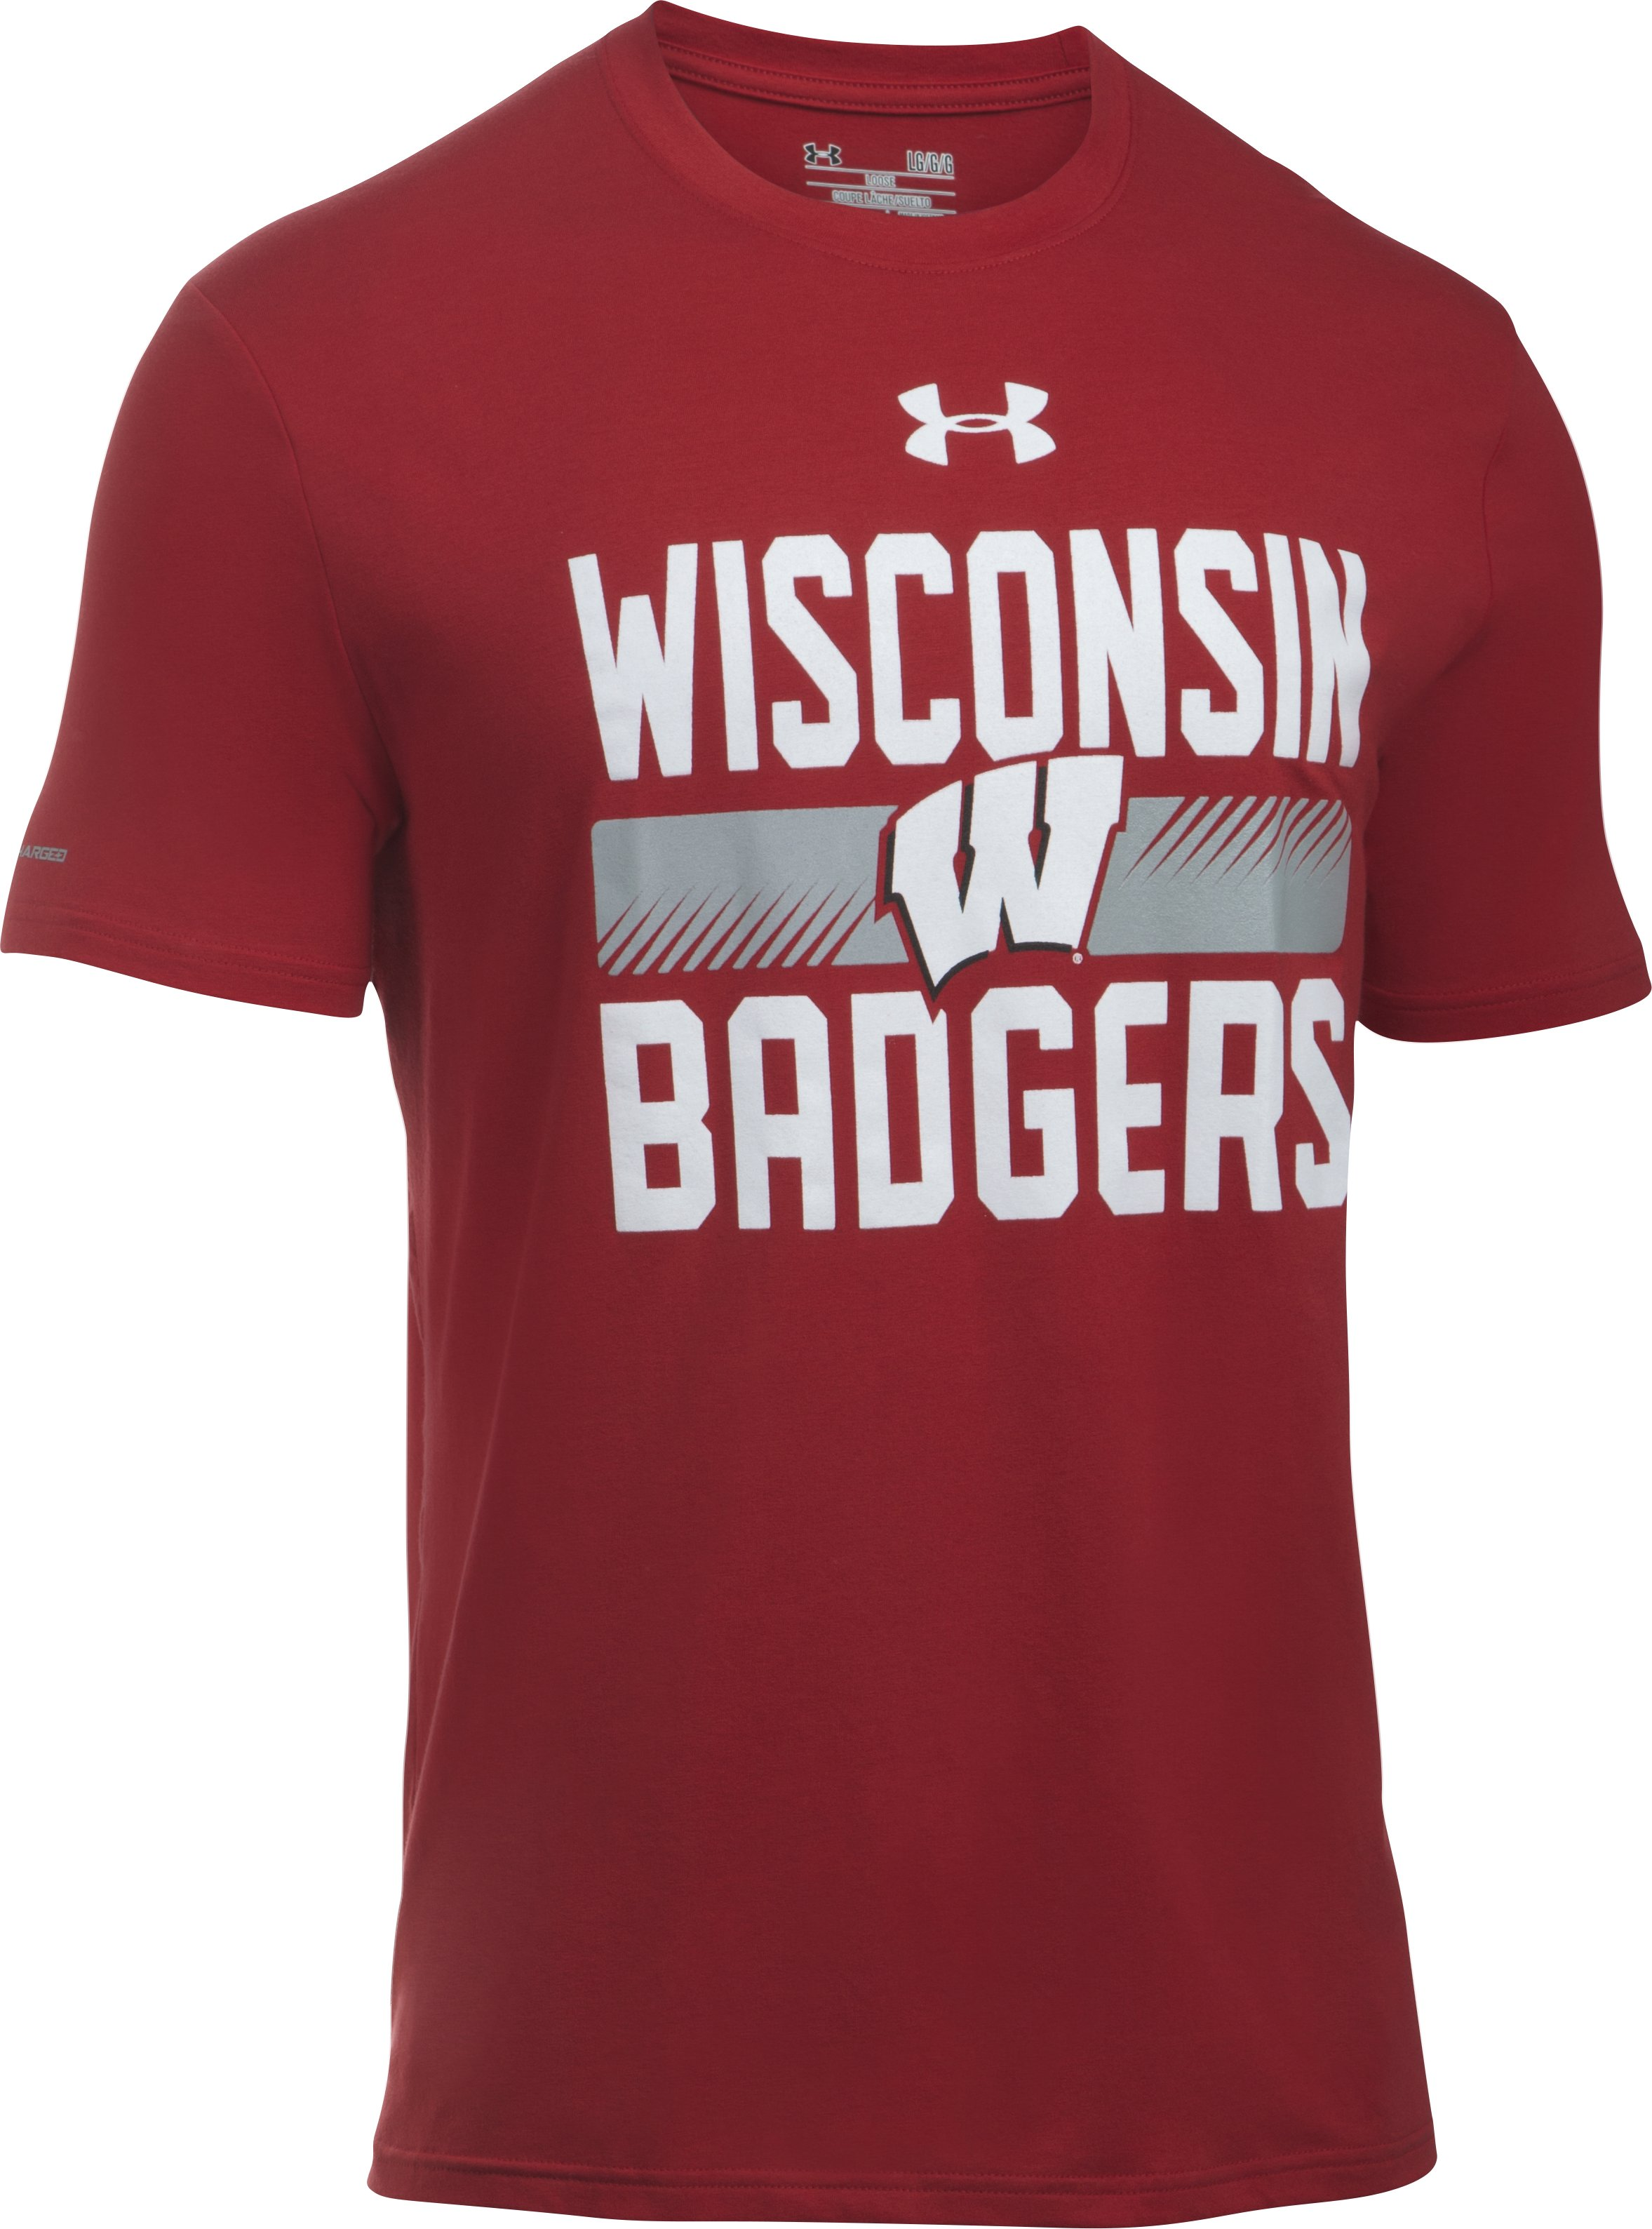 Men's Wisconsin T-Shirt, Flawless